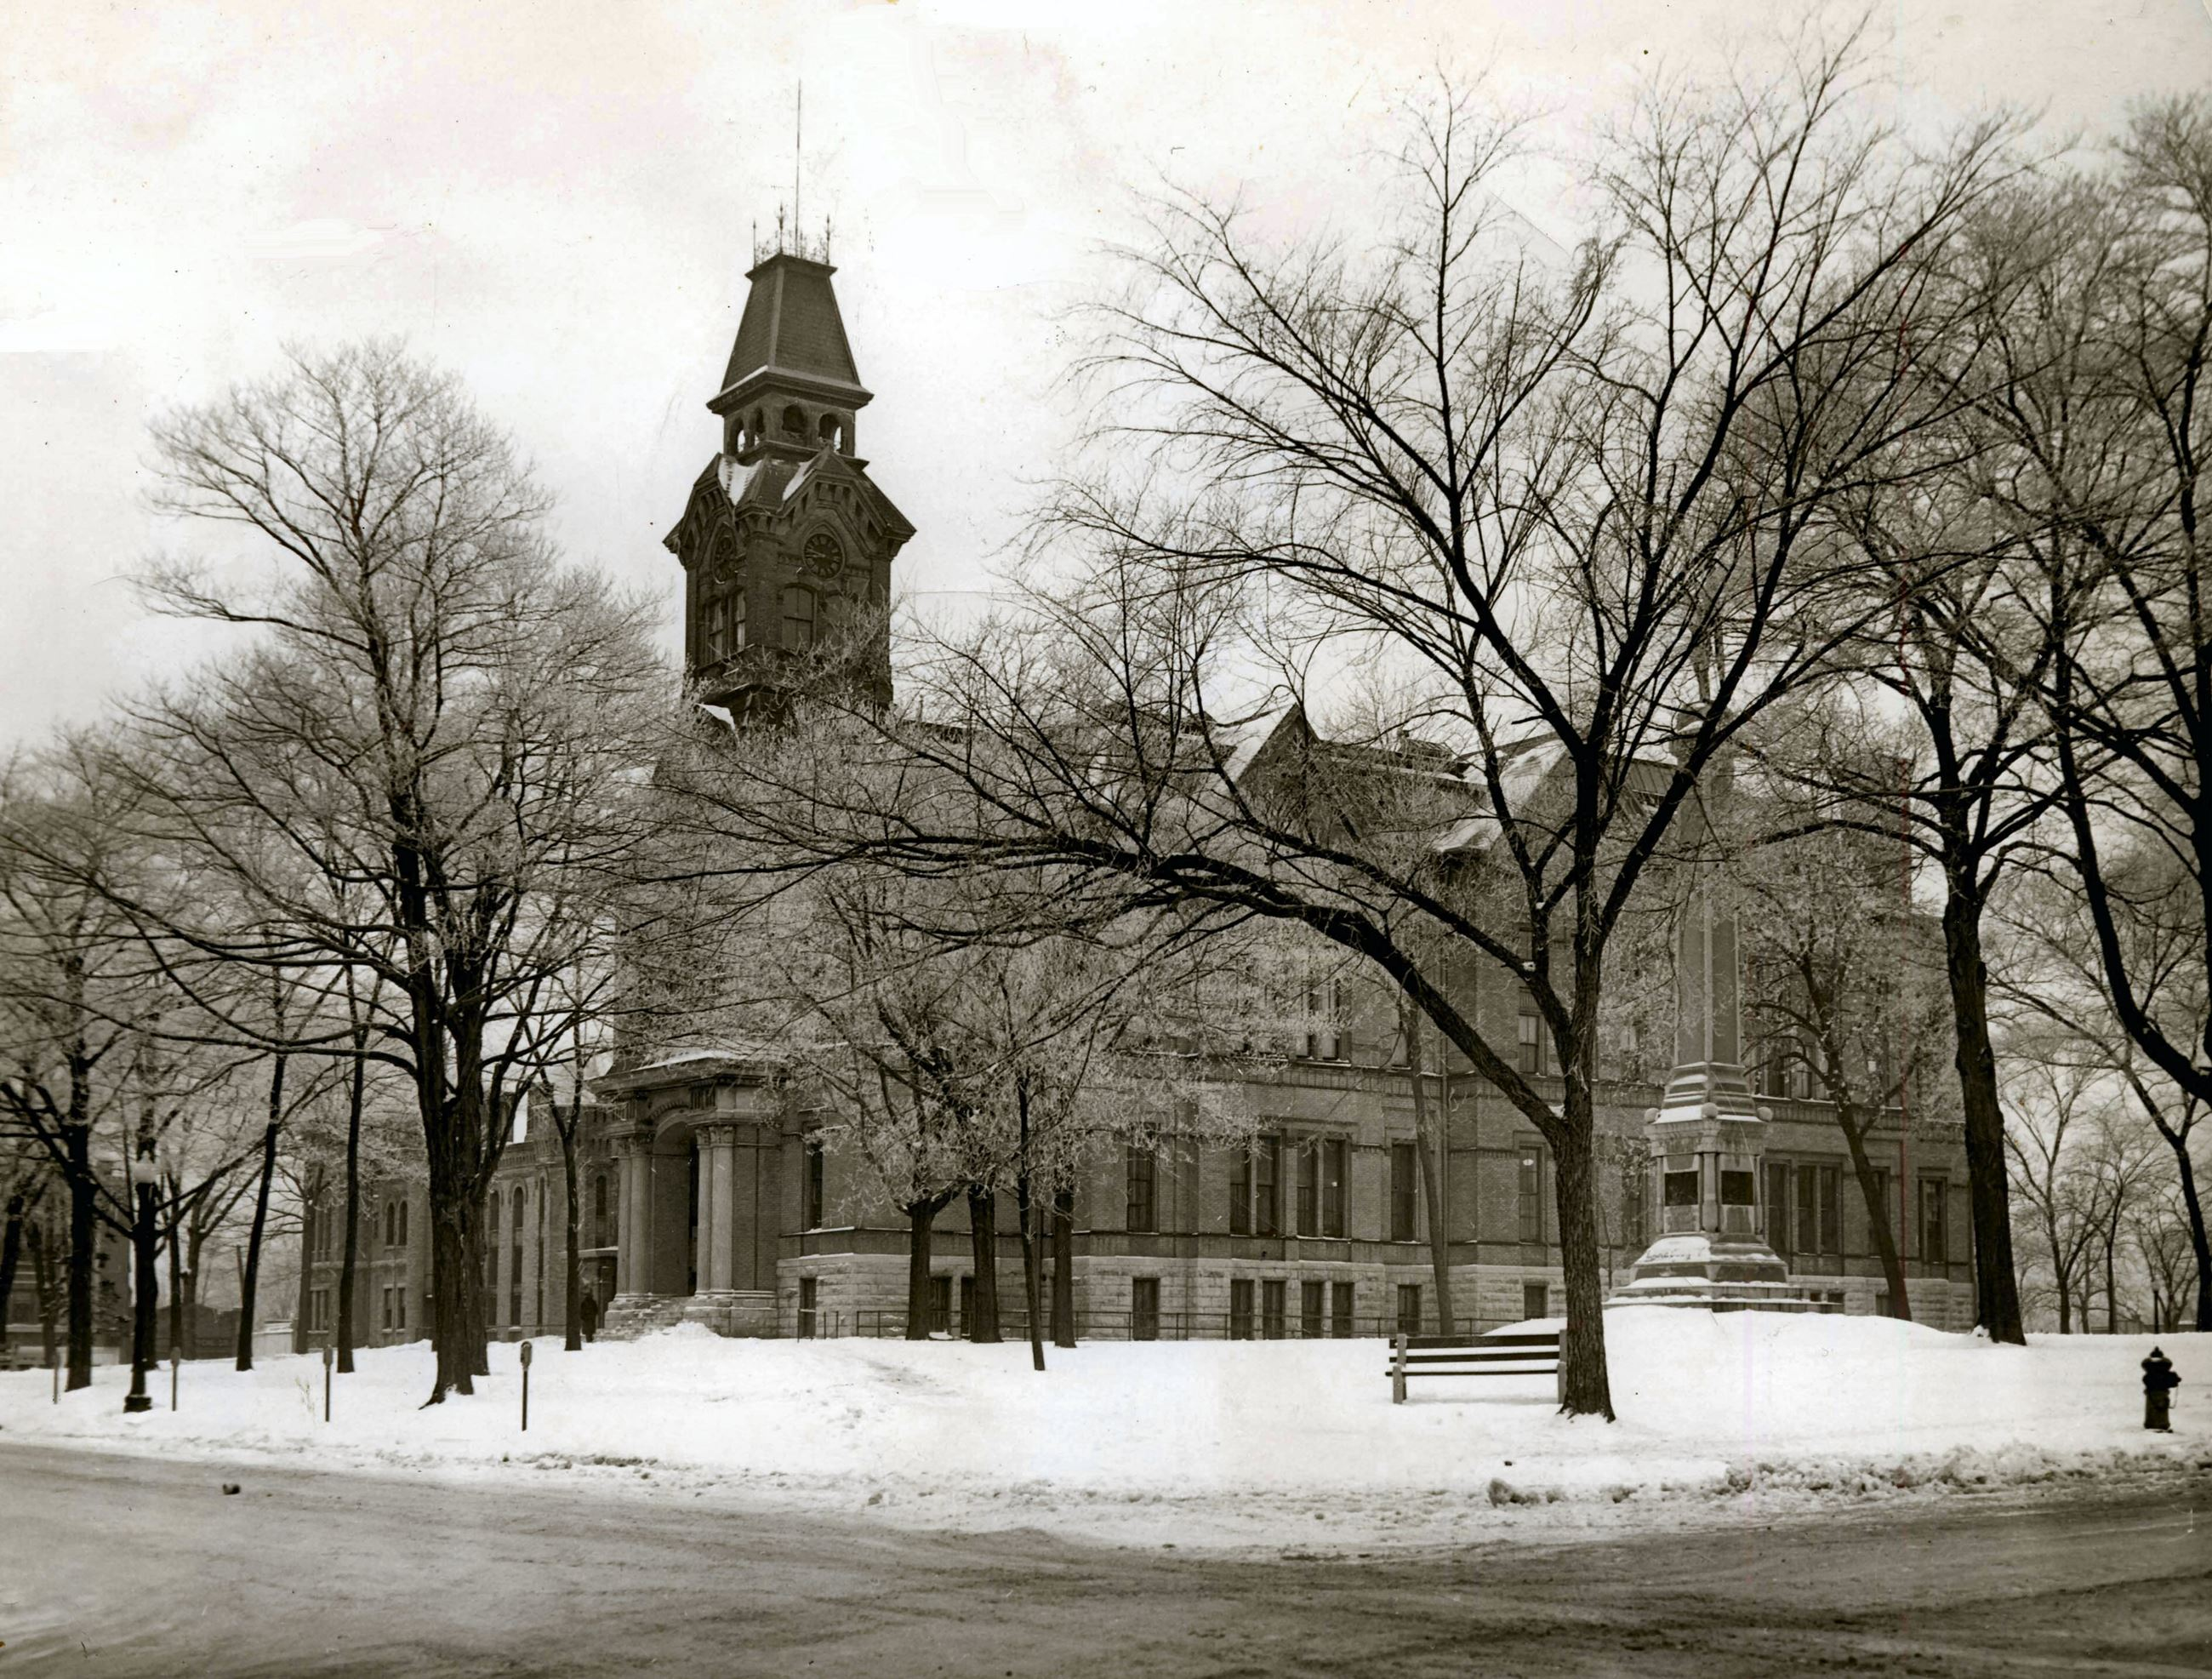 Second Courthouse in Waukegan, Illinois After a Snow